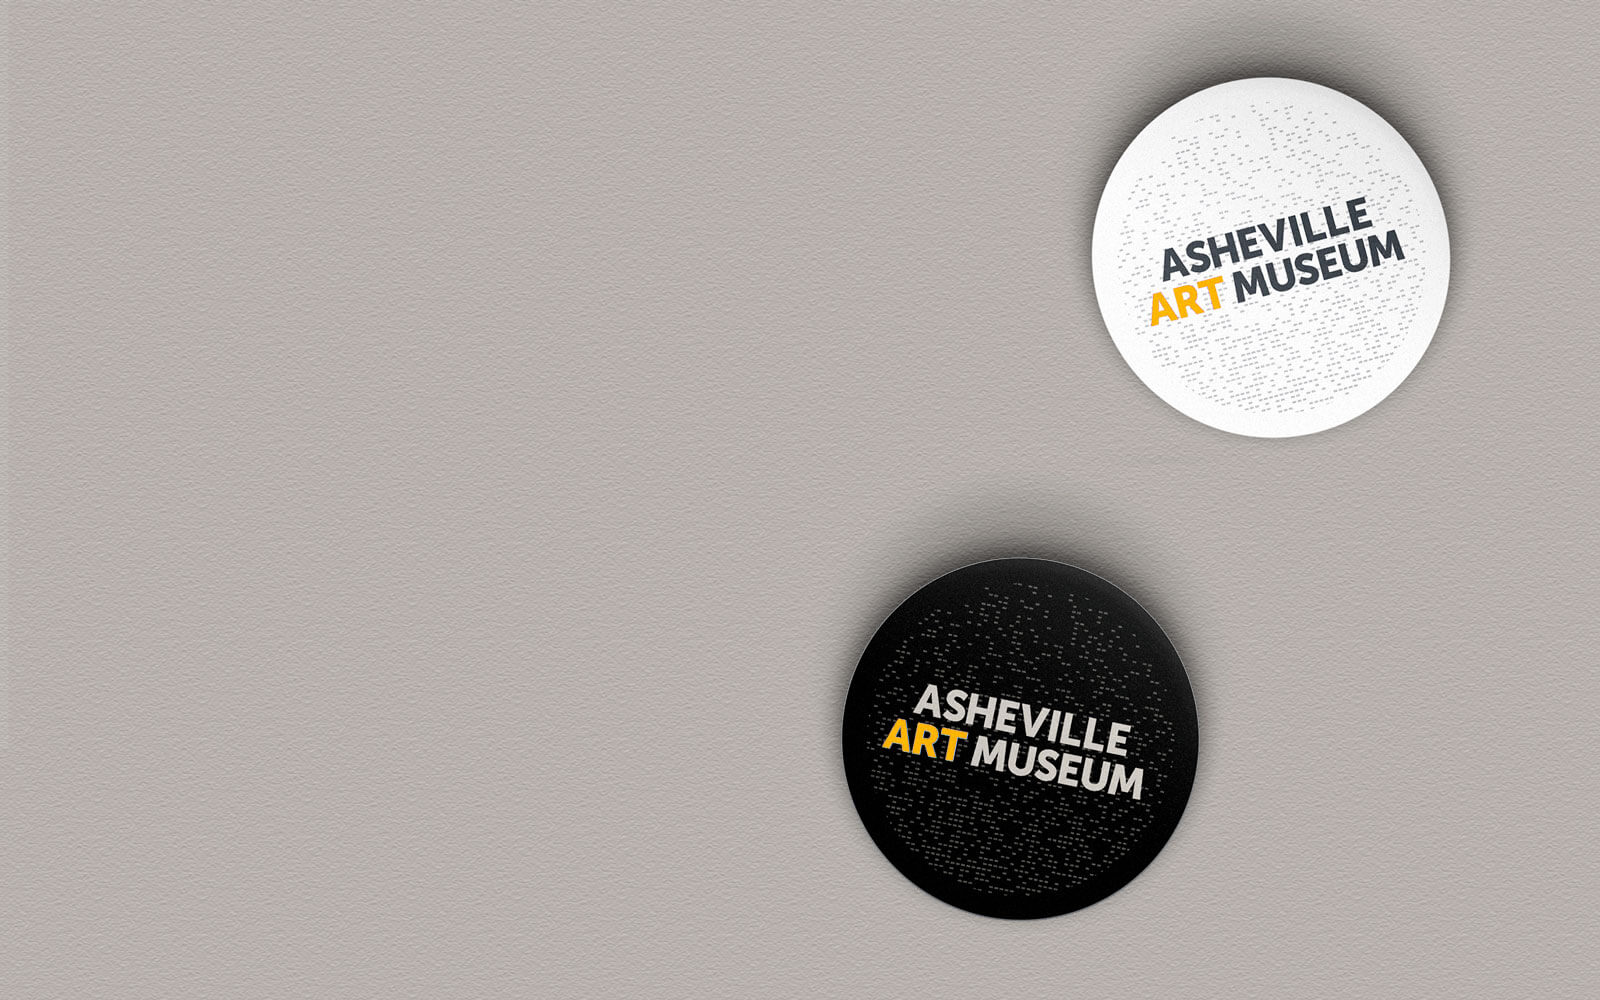 Mockup rendering of Asheville Art Museum buttons with stacked logo centered. One button is white and one button is black.